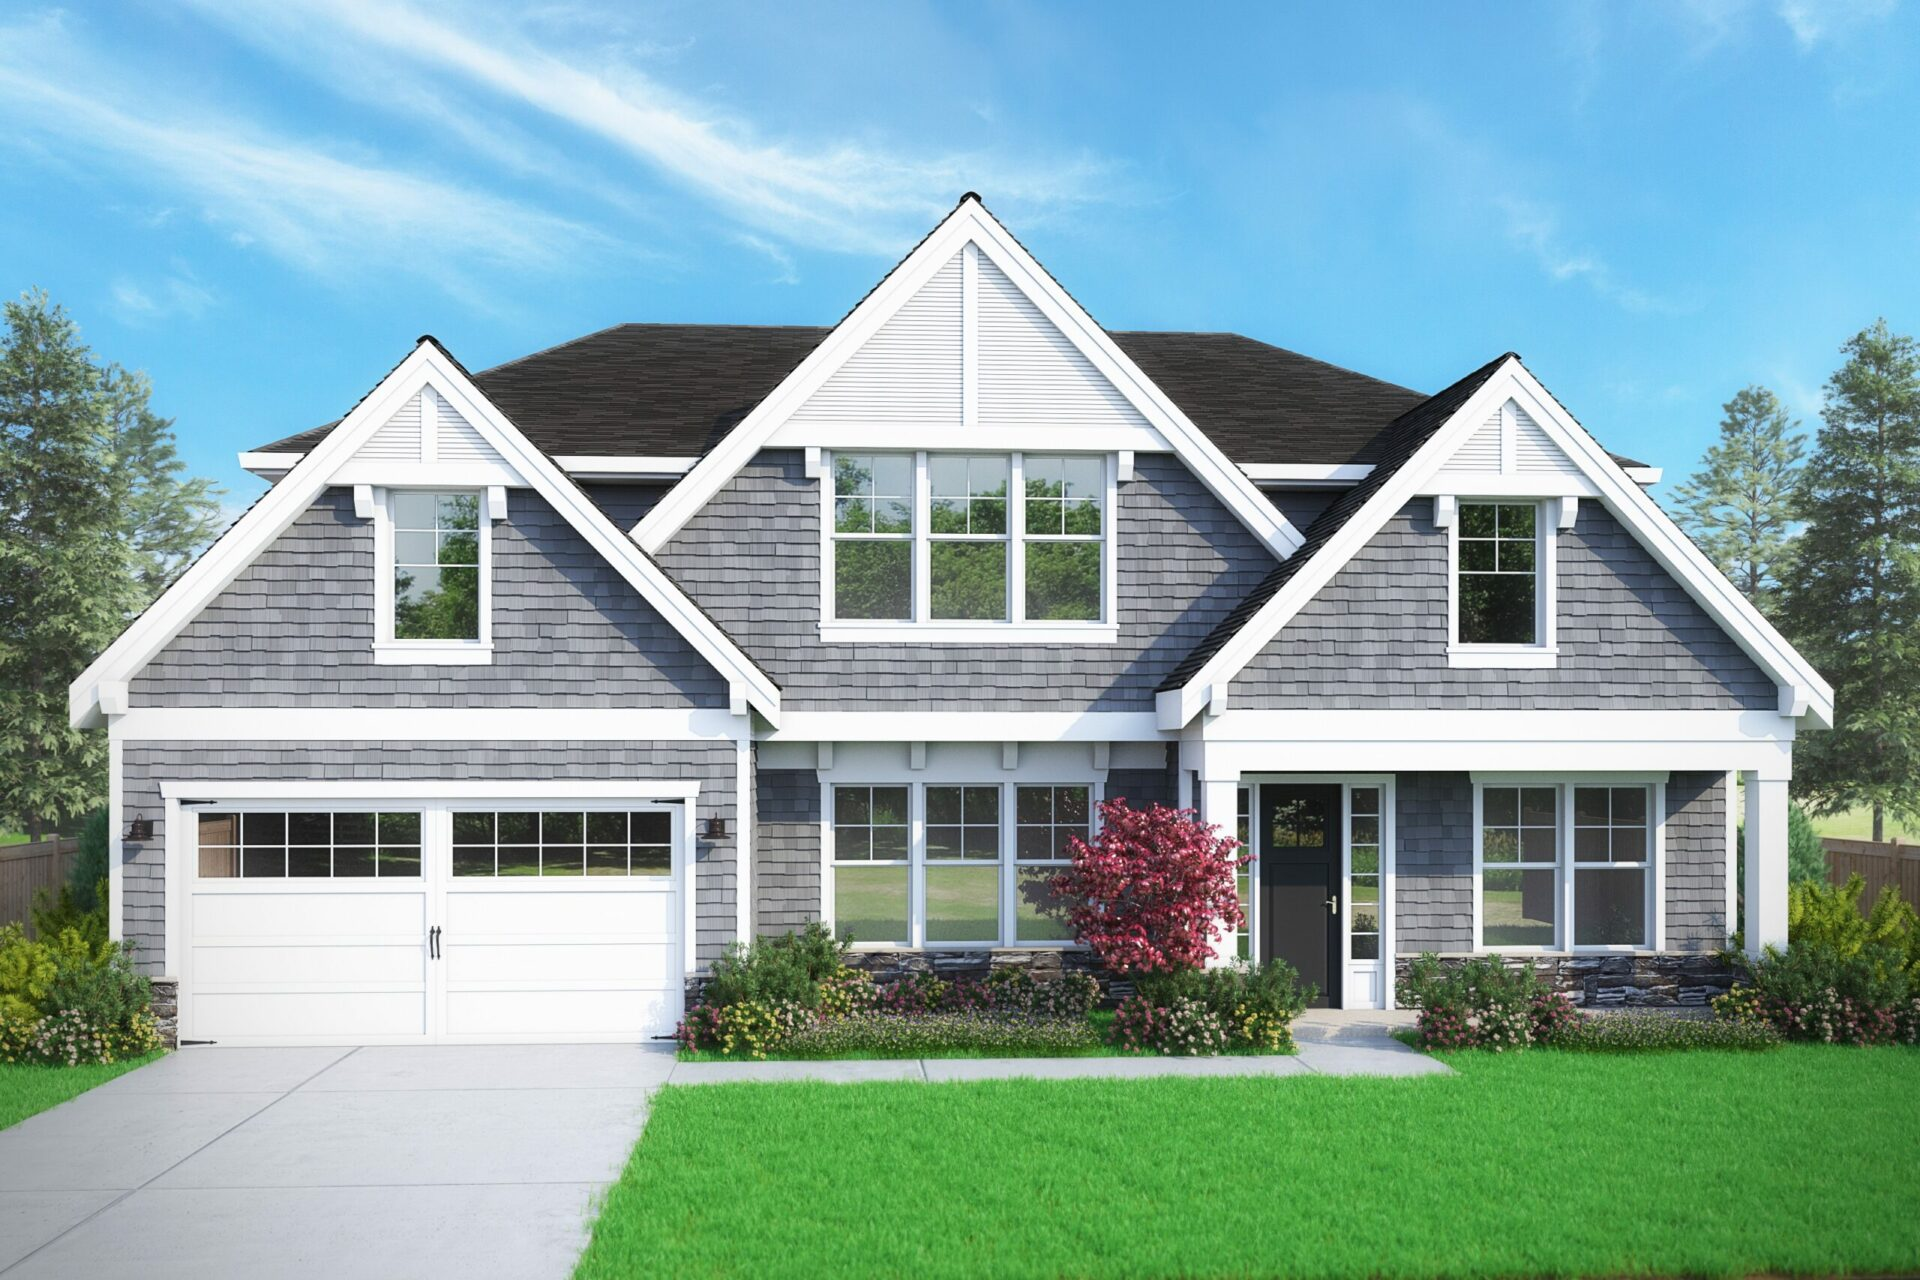 View our new luxury home construction on 4012 151st AVE SE, in Bellevue, WA from MN Custom Home